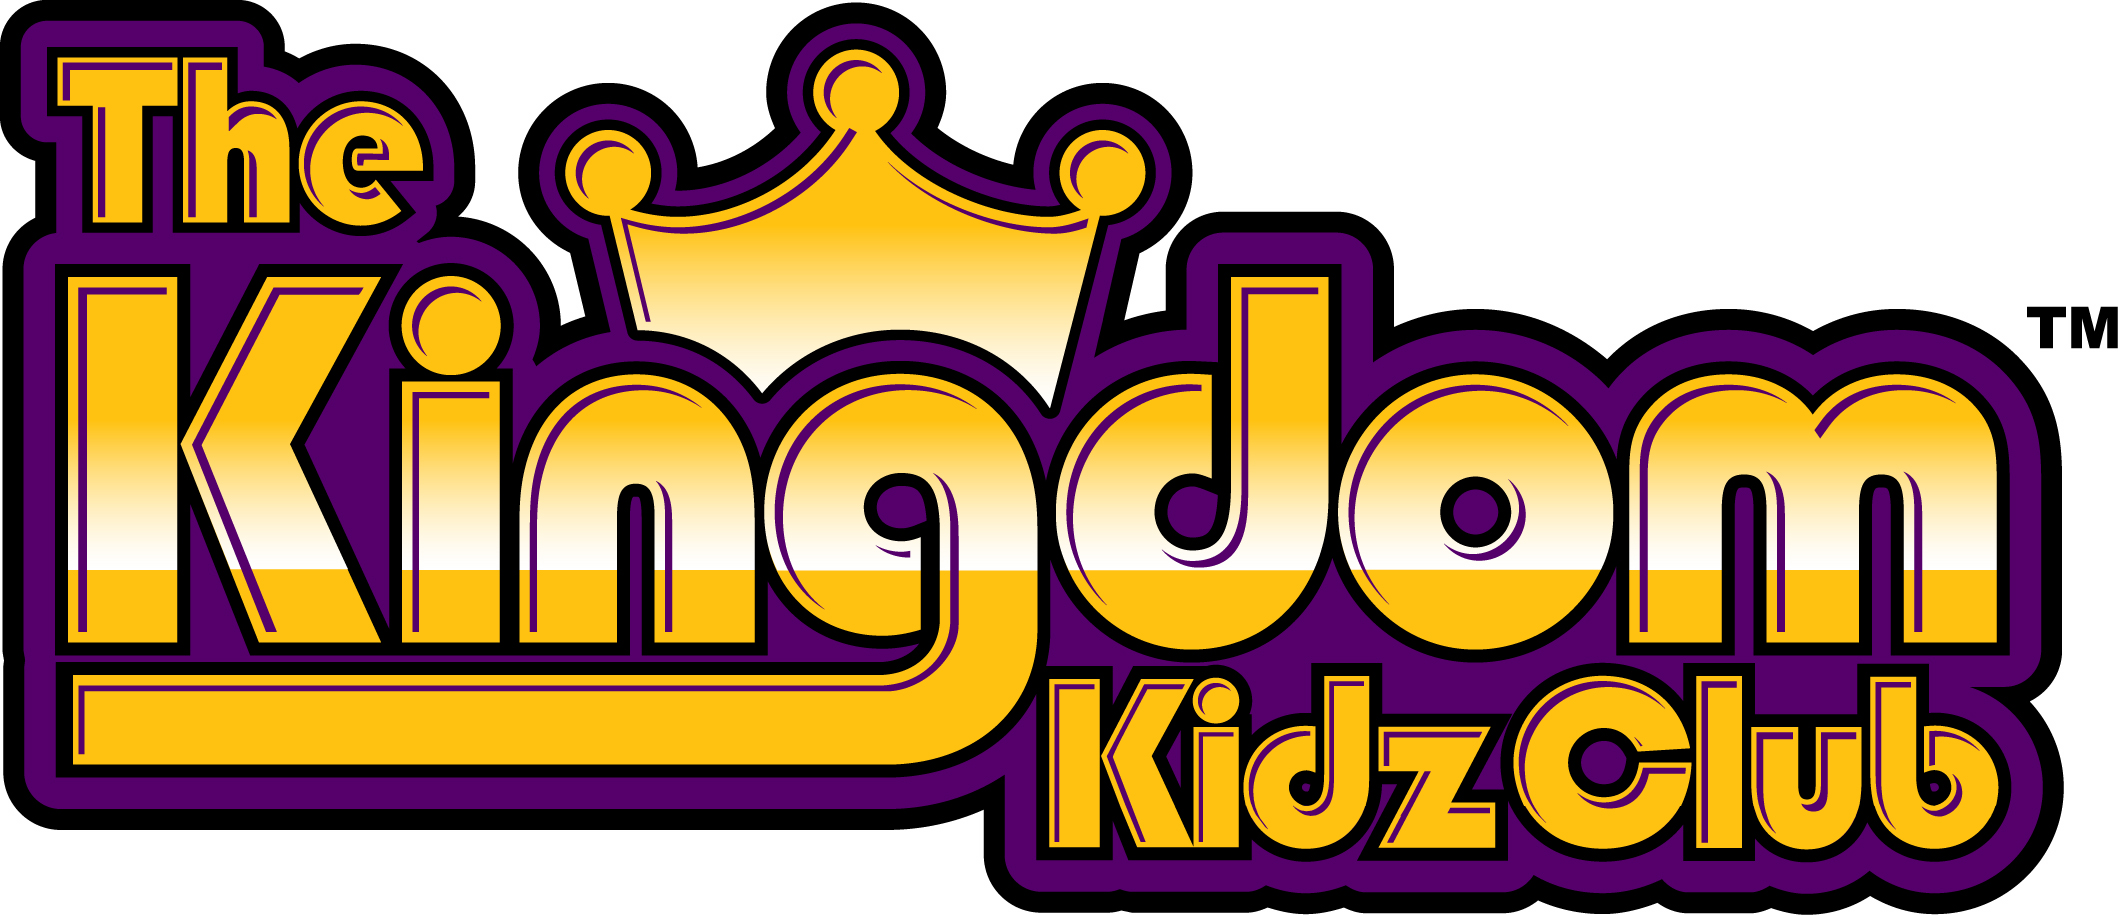 The Kingdom Kidz Club Sets Out To Help 1 Million Kids ...